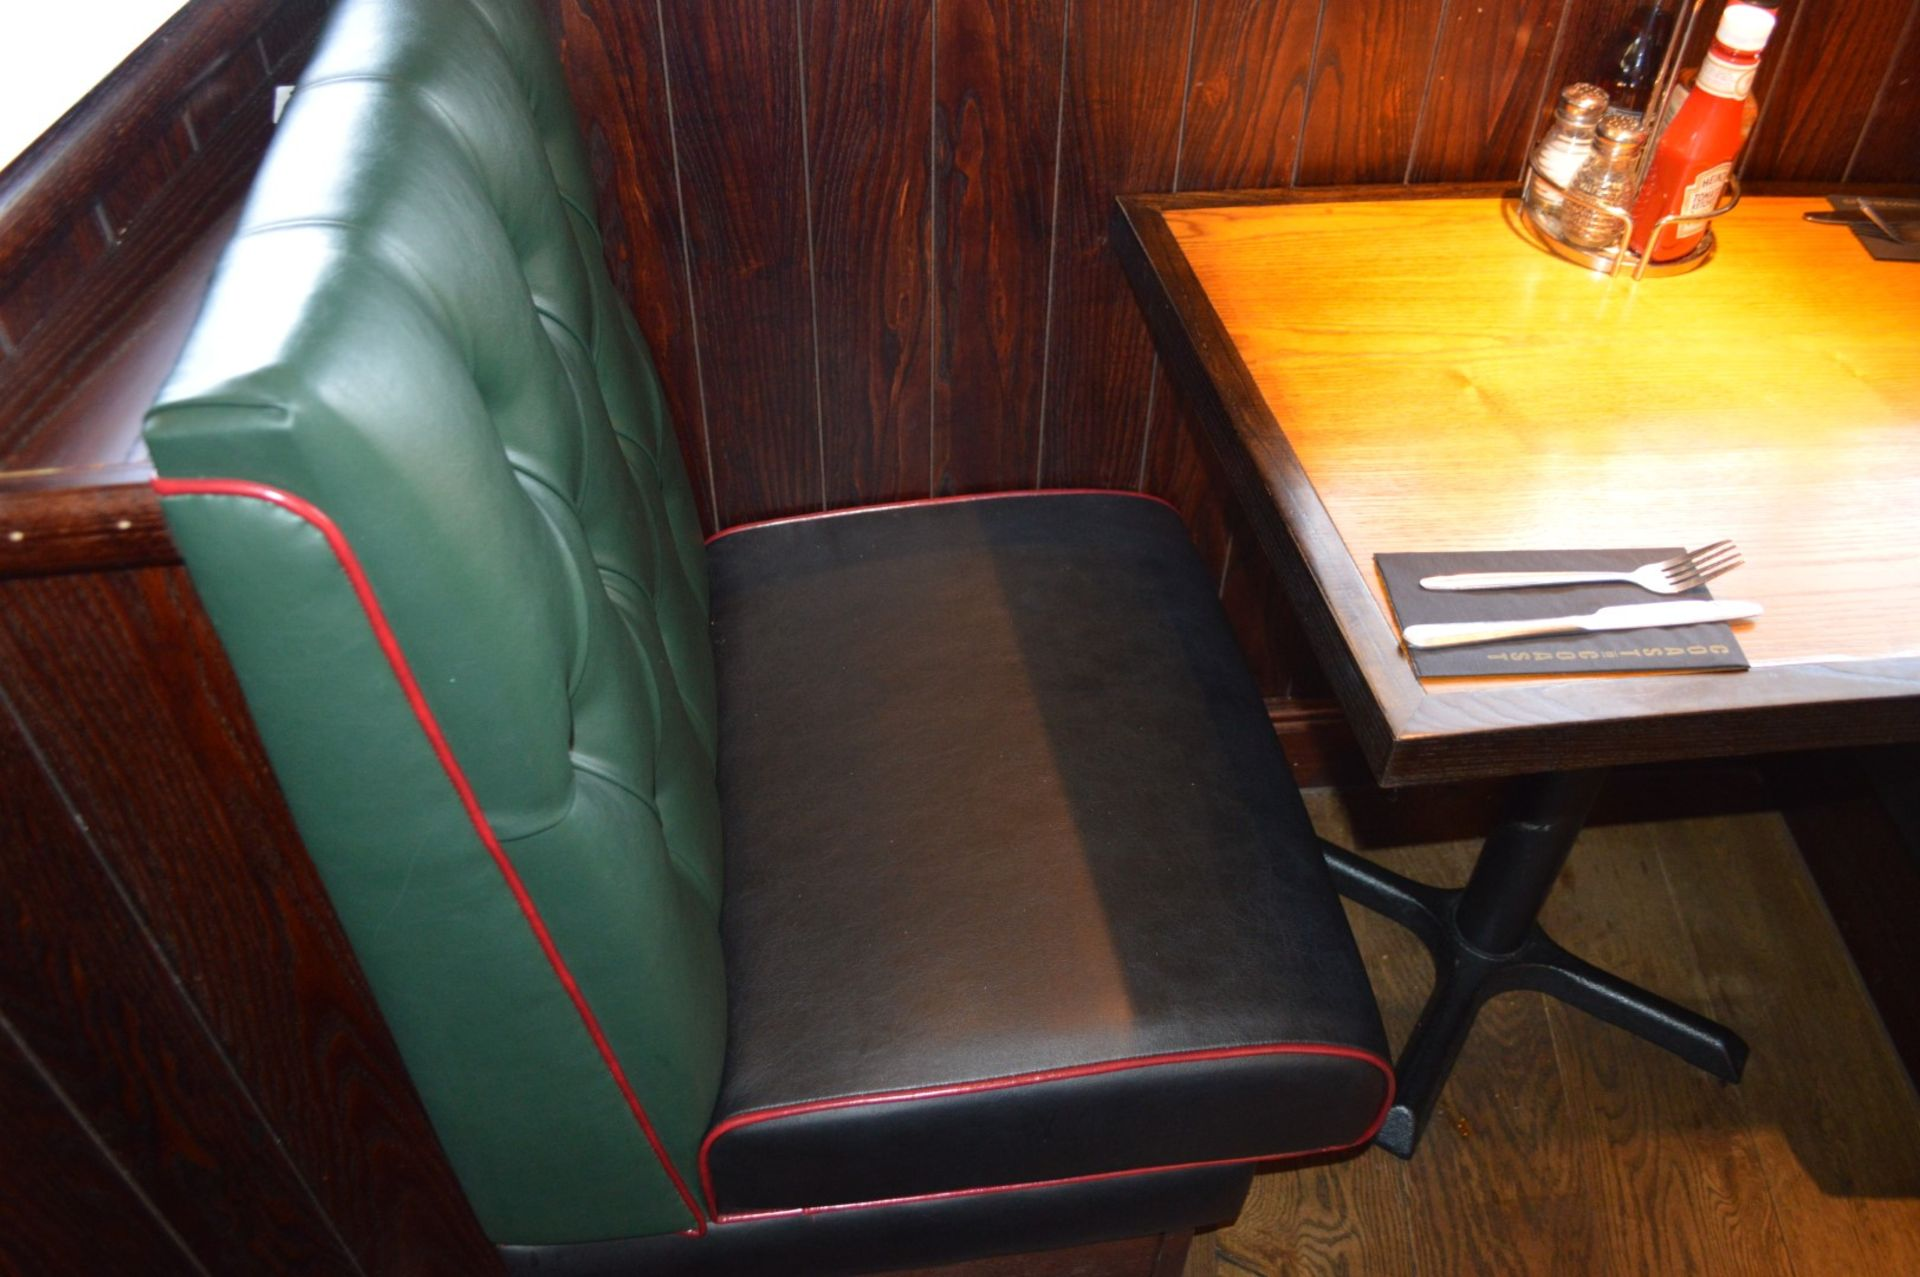 Lot 67 - 3 x Sections of Restaurant Booth Seating - Include 2 x Single Seats and 1 x Single Back to Back Seat